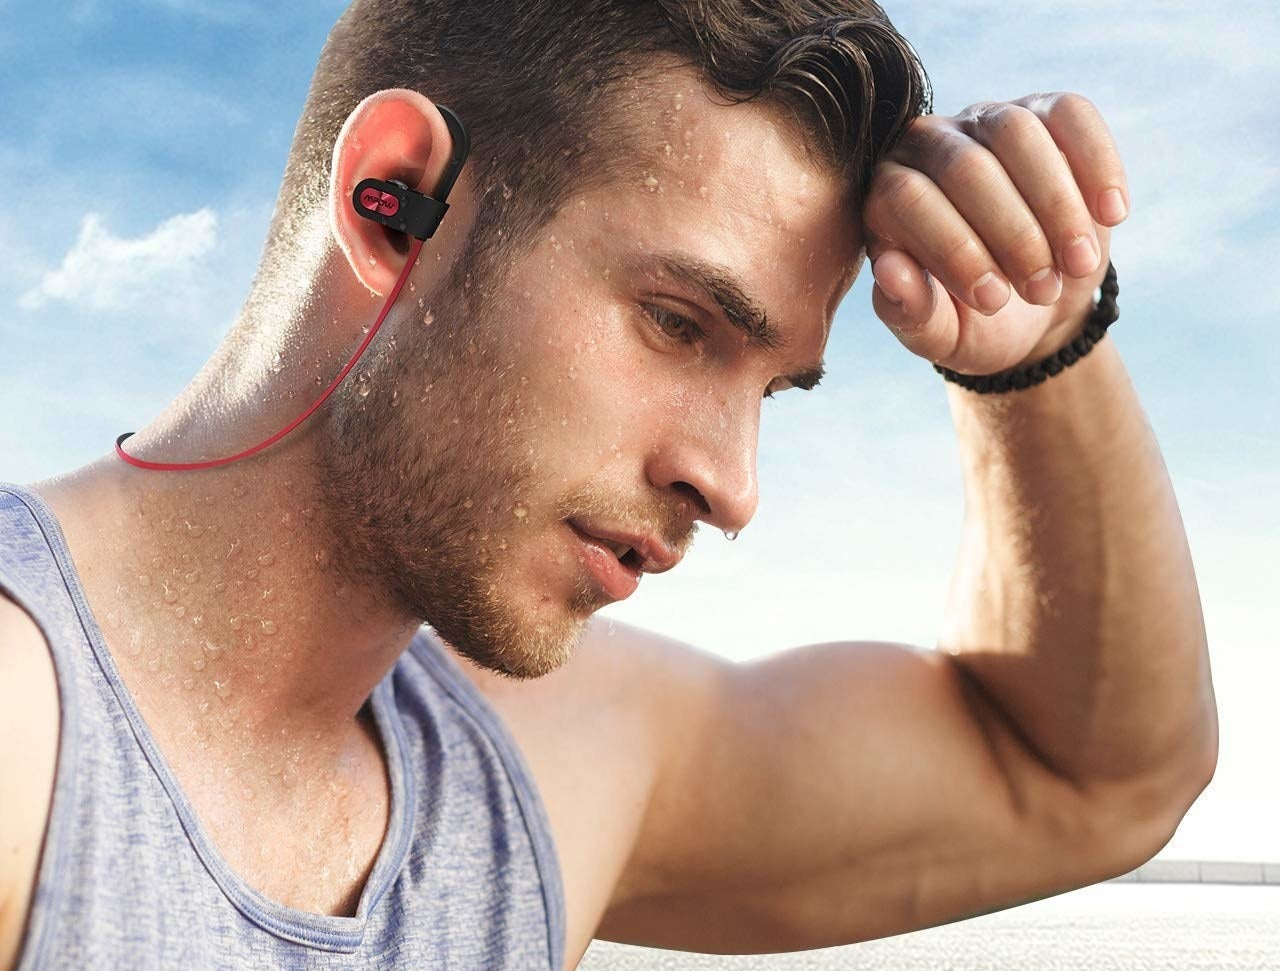 """Promising review: """"Great headphones for the price. I wear them every day for at least two hours per day, including at the gym. They are comfortable and stay in my ear just fine. The volume is loud and I am able to connect to my phone and laptop at the same time. They have great range and build quality. The battery lasts a long time — it has over 10 hours of talk time."""" —Saber APrice: $19.99 (available in two colors)"""